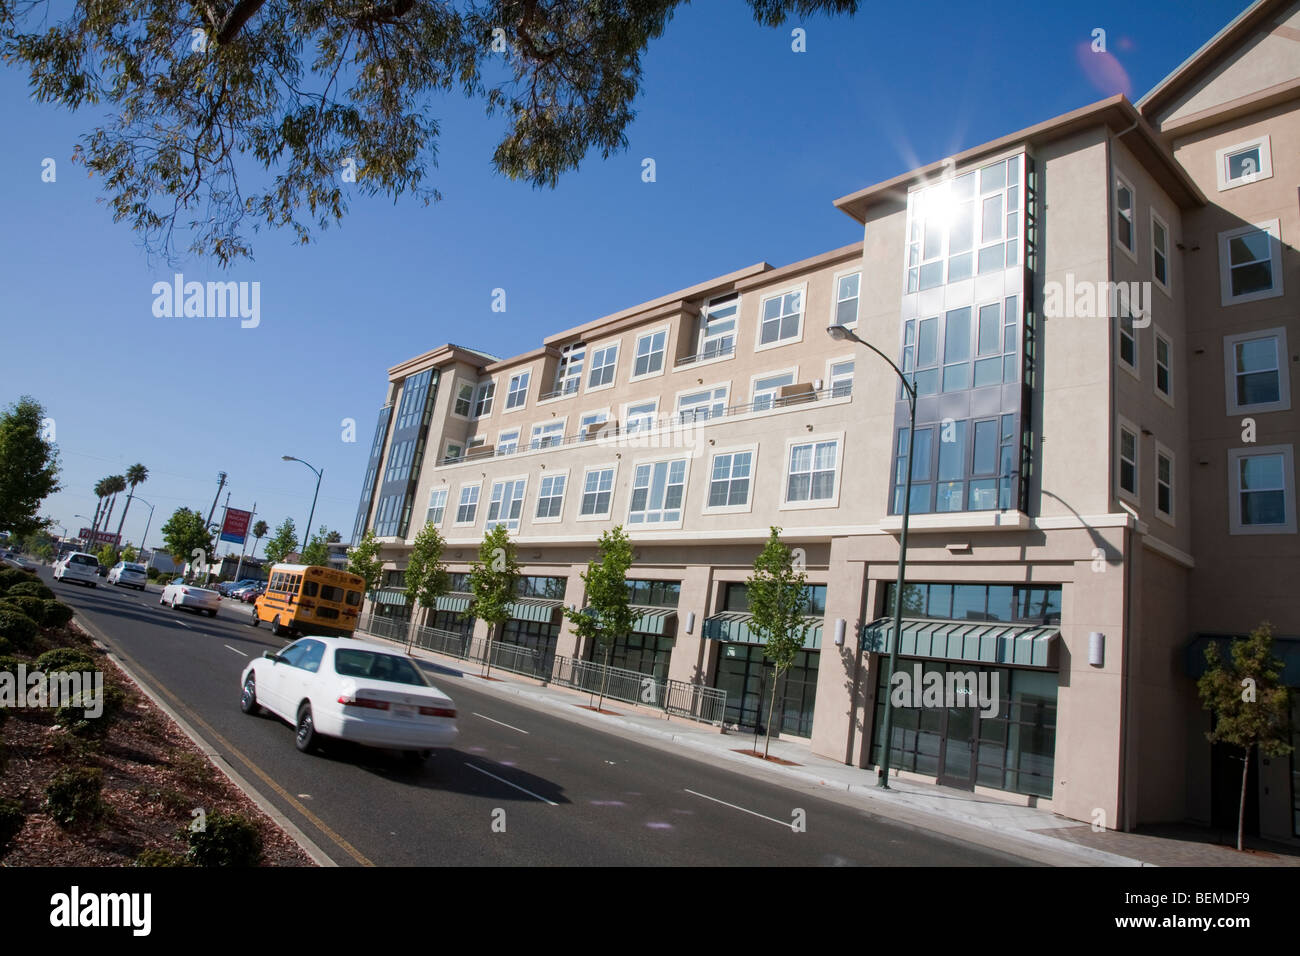 A tilted view of a building with condos and office space, viewed from a divided road. Park Broadway, El Camino Real, Stock Photo